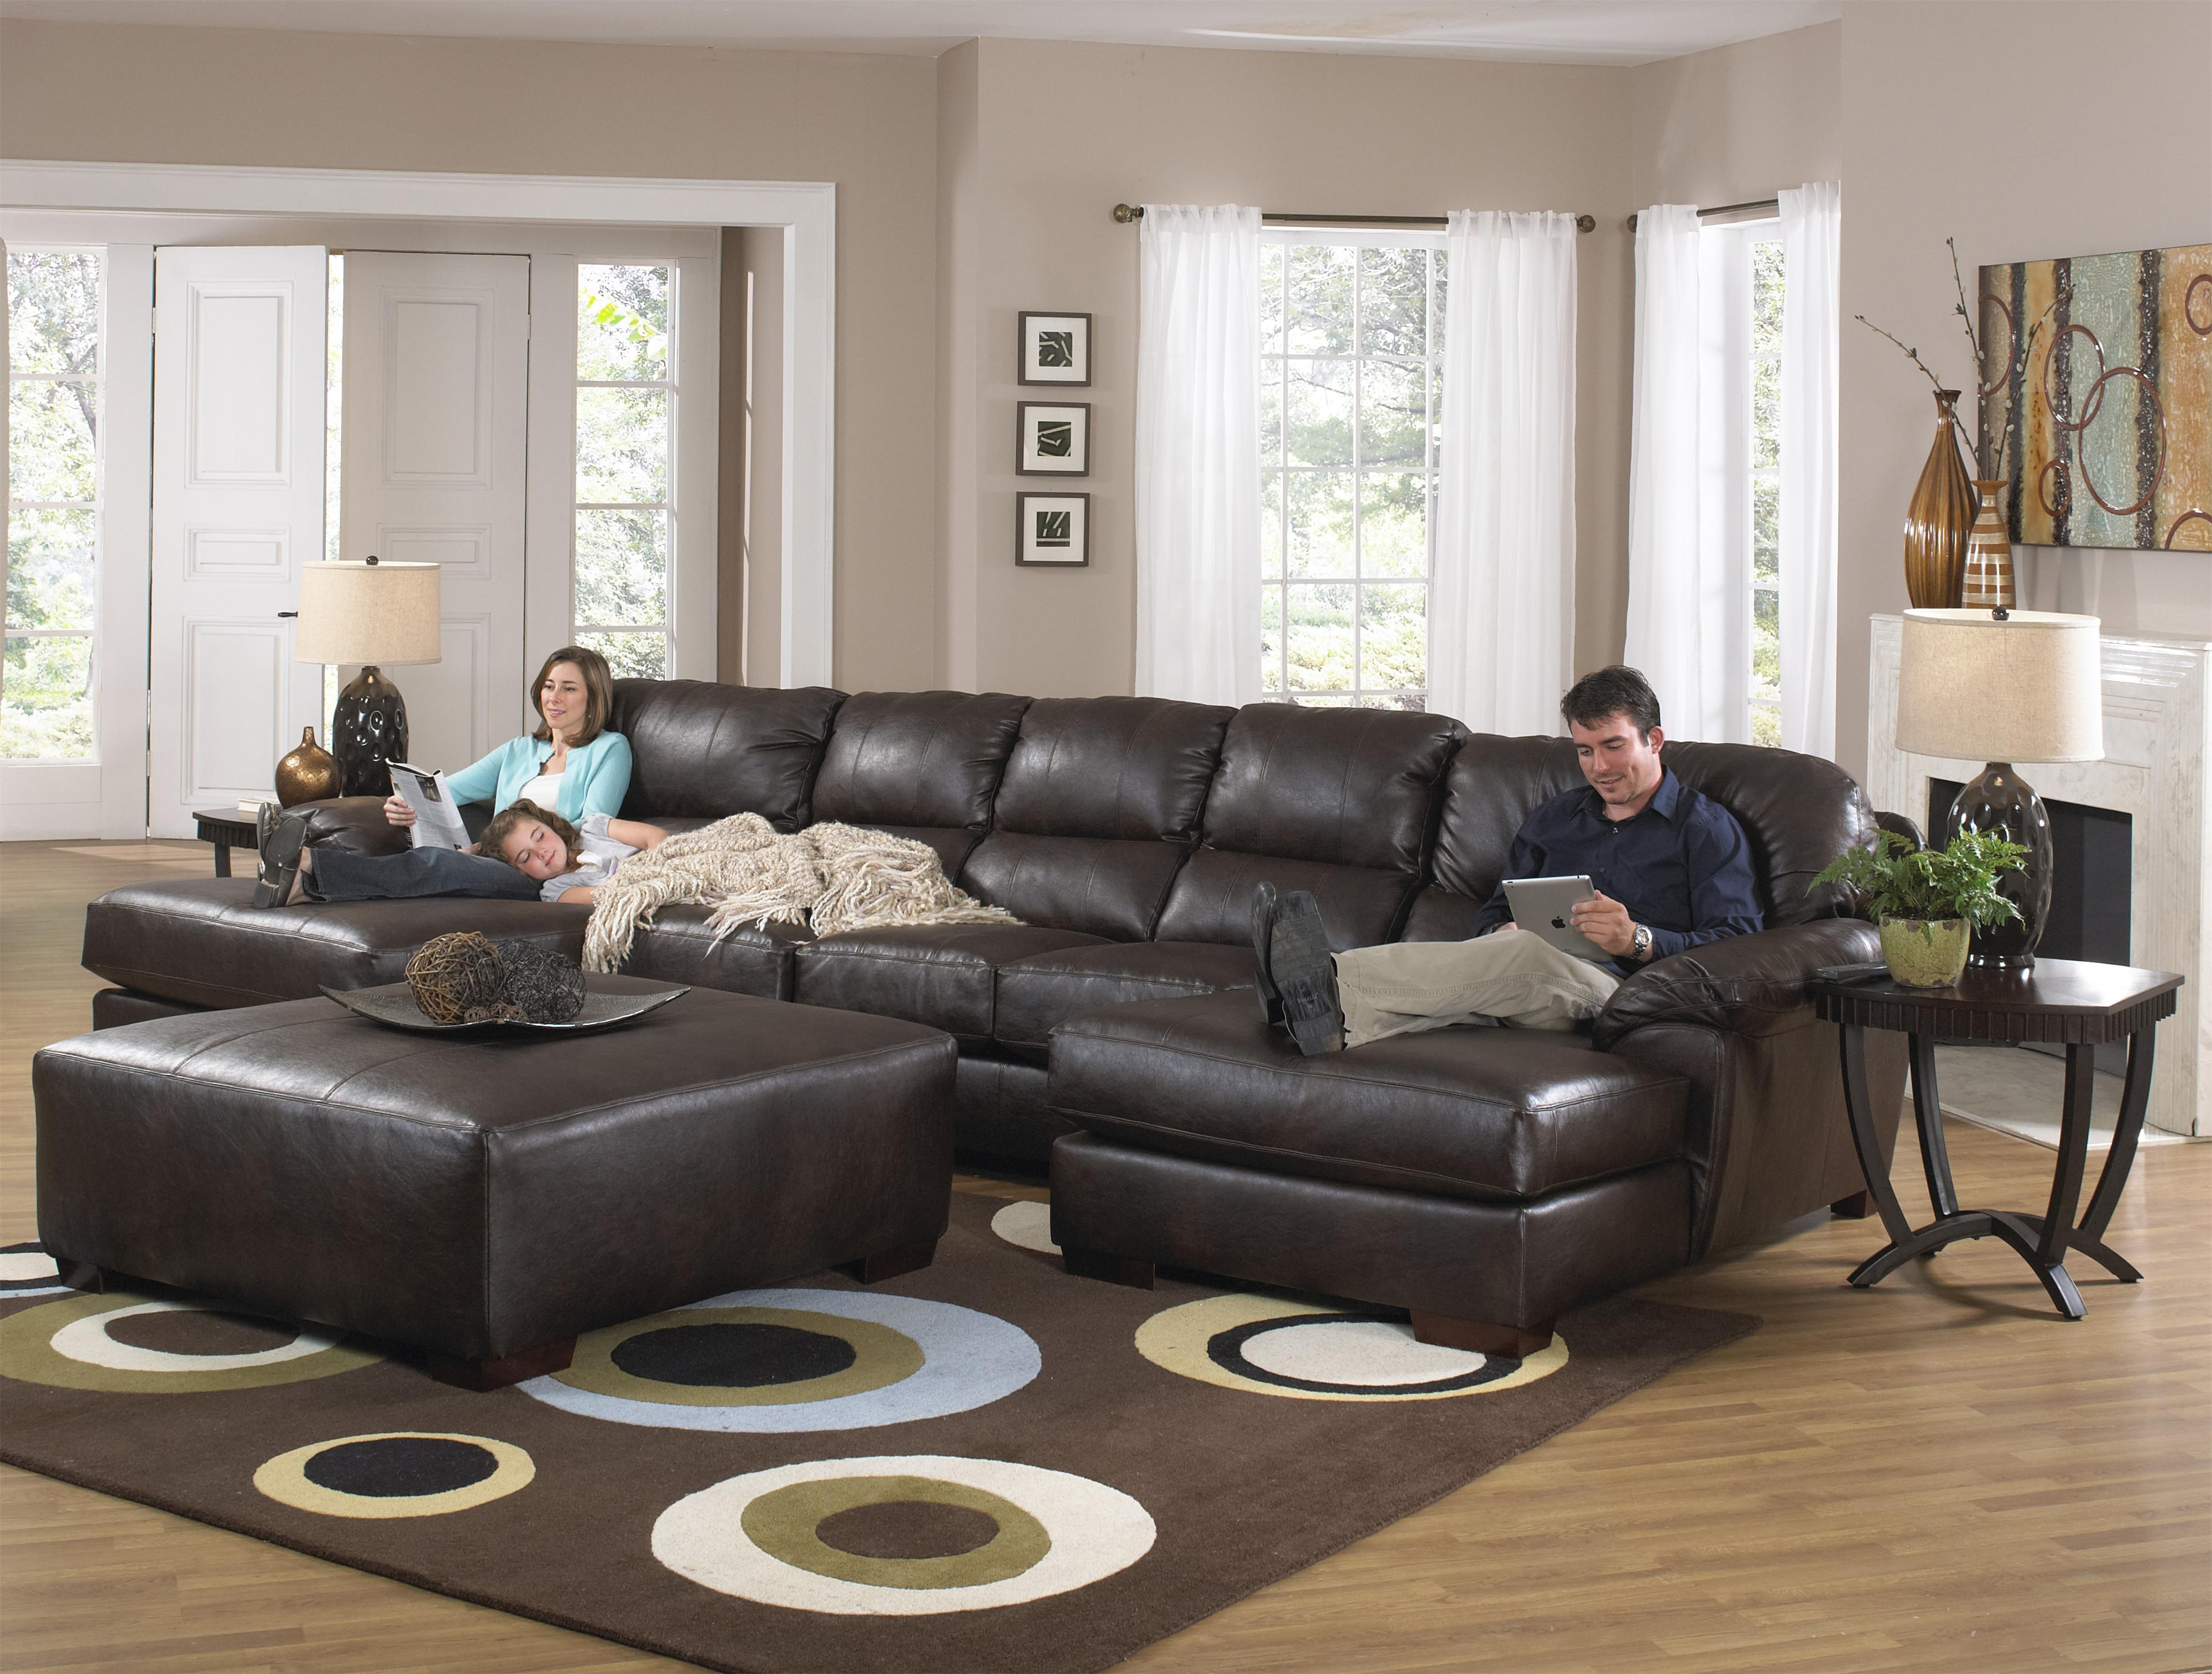 Two Chaise Sectional Sofa With Five Total Seatsjackson Furniture With Regard To Jackson 6 Piece Power Reclining Sectionals (Image 25 of 25)